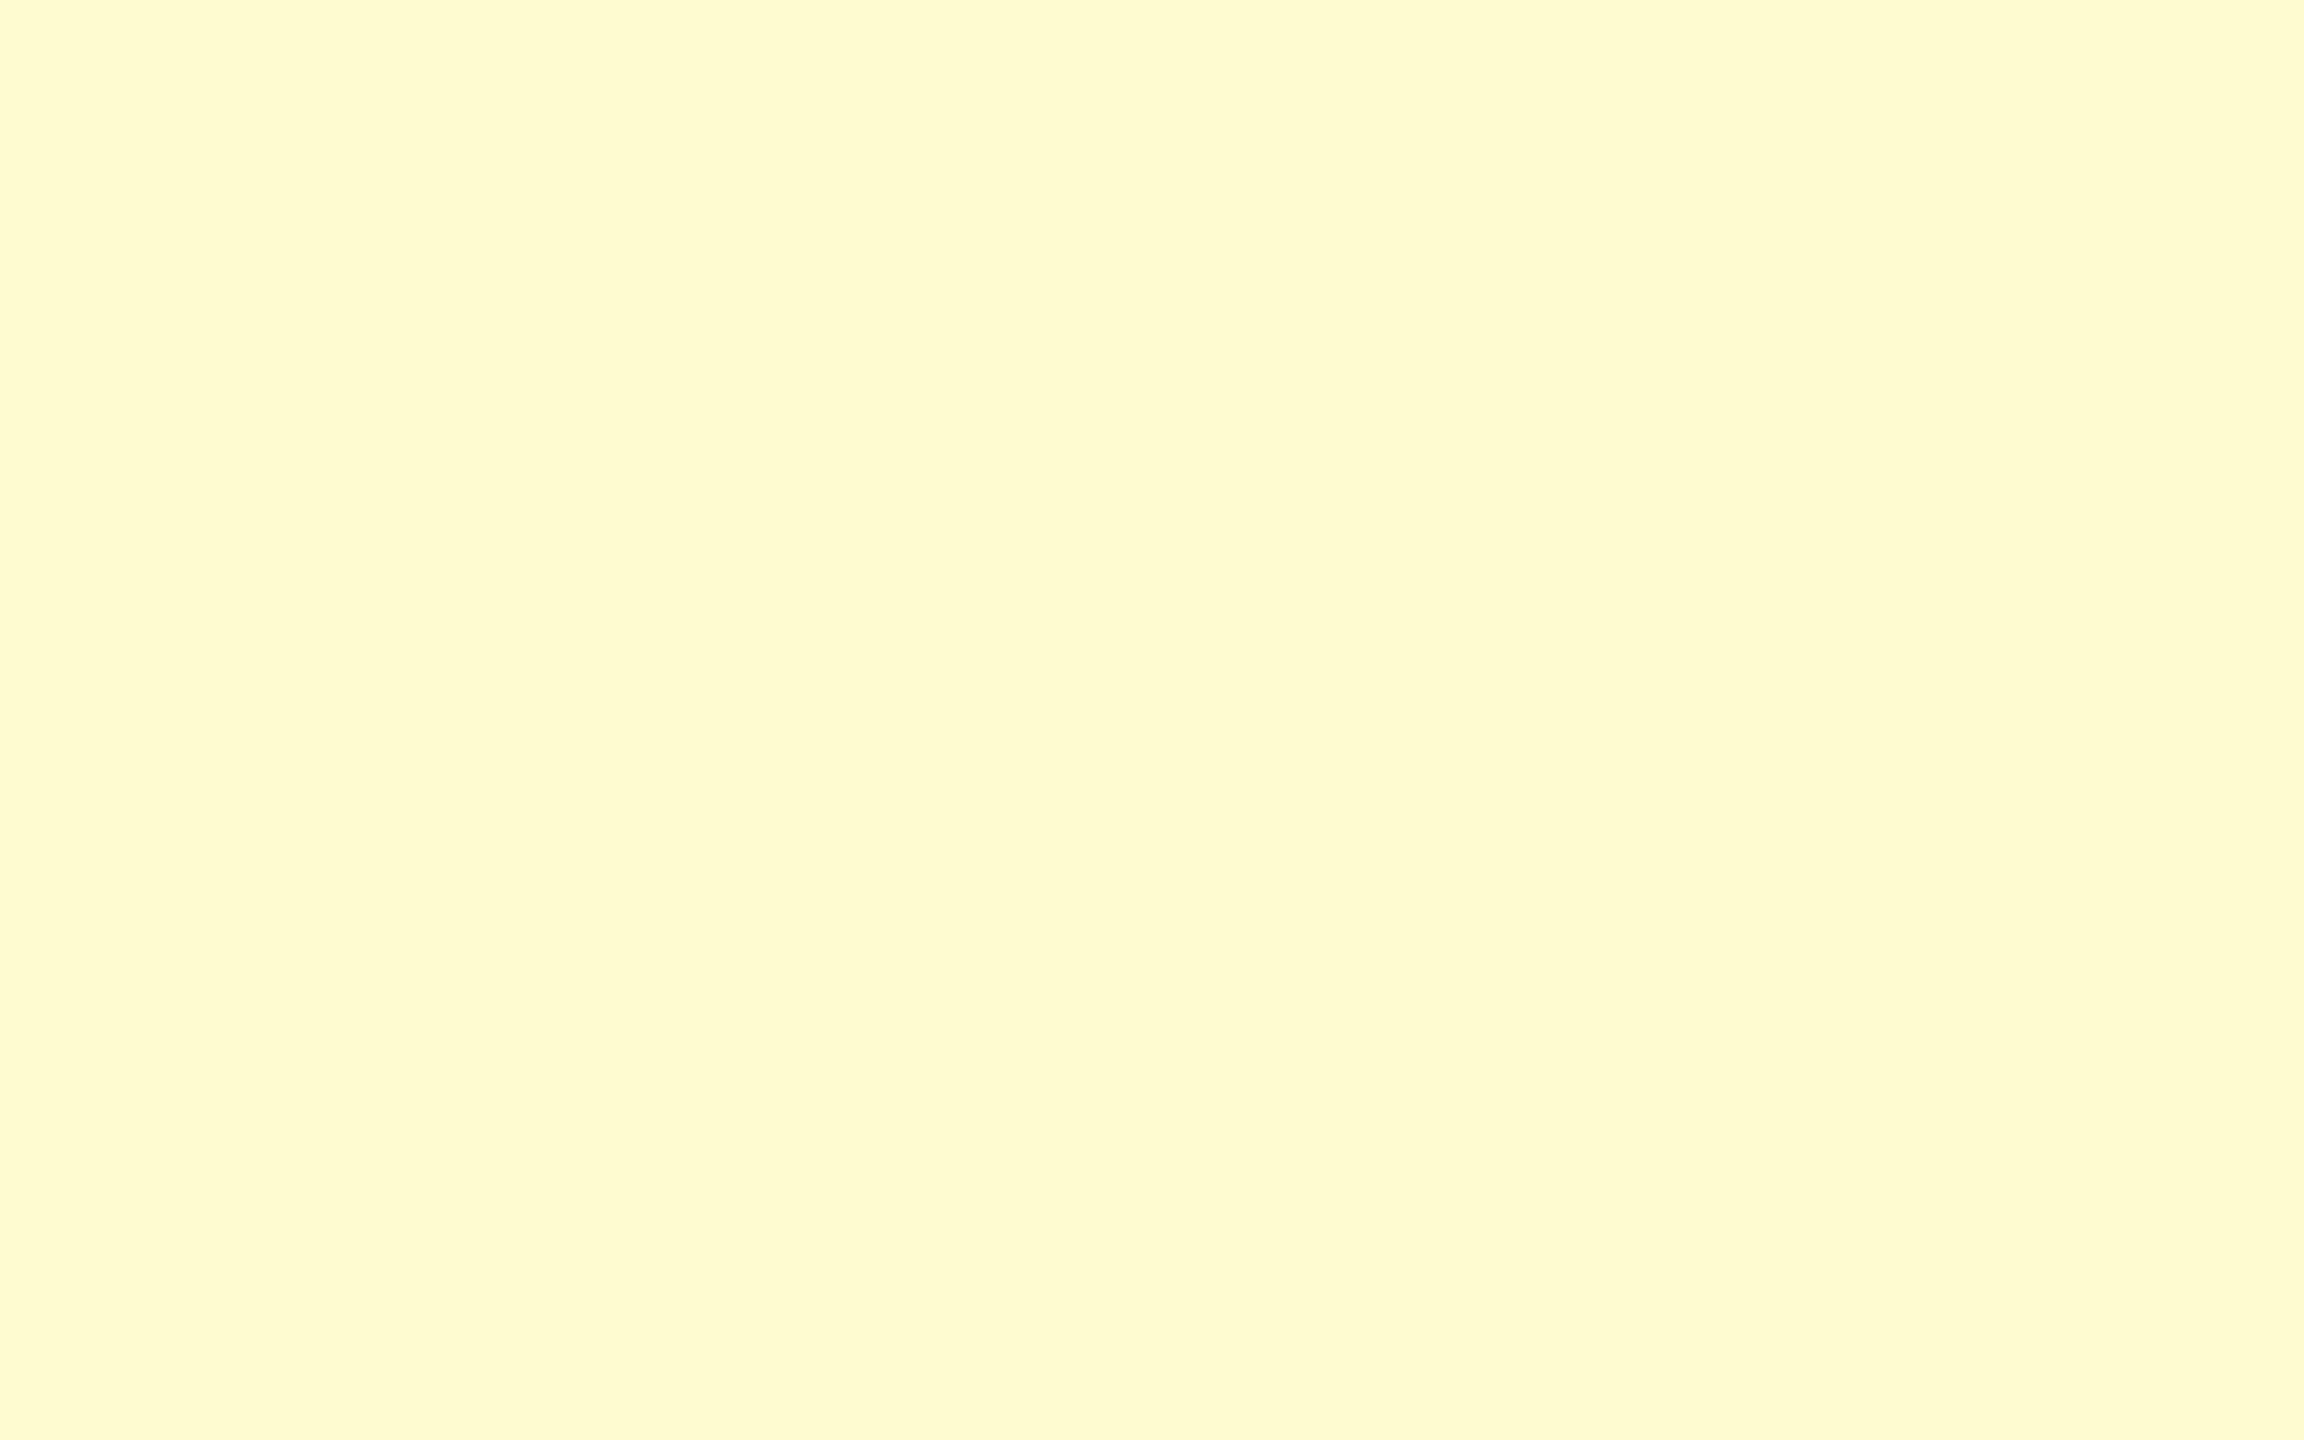 2304x1440 Cream Solid Color Background